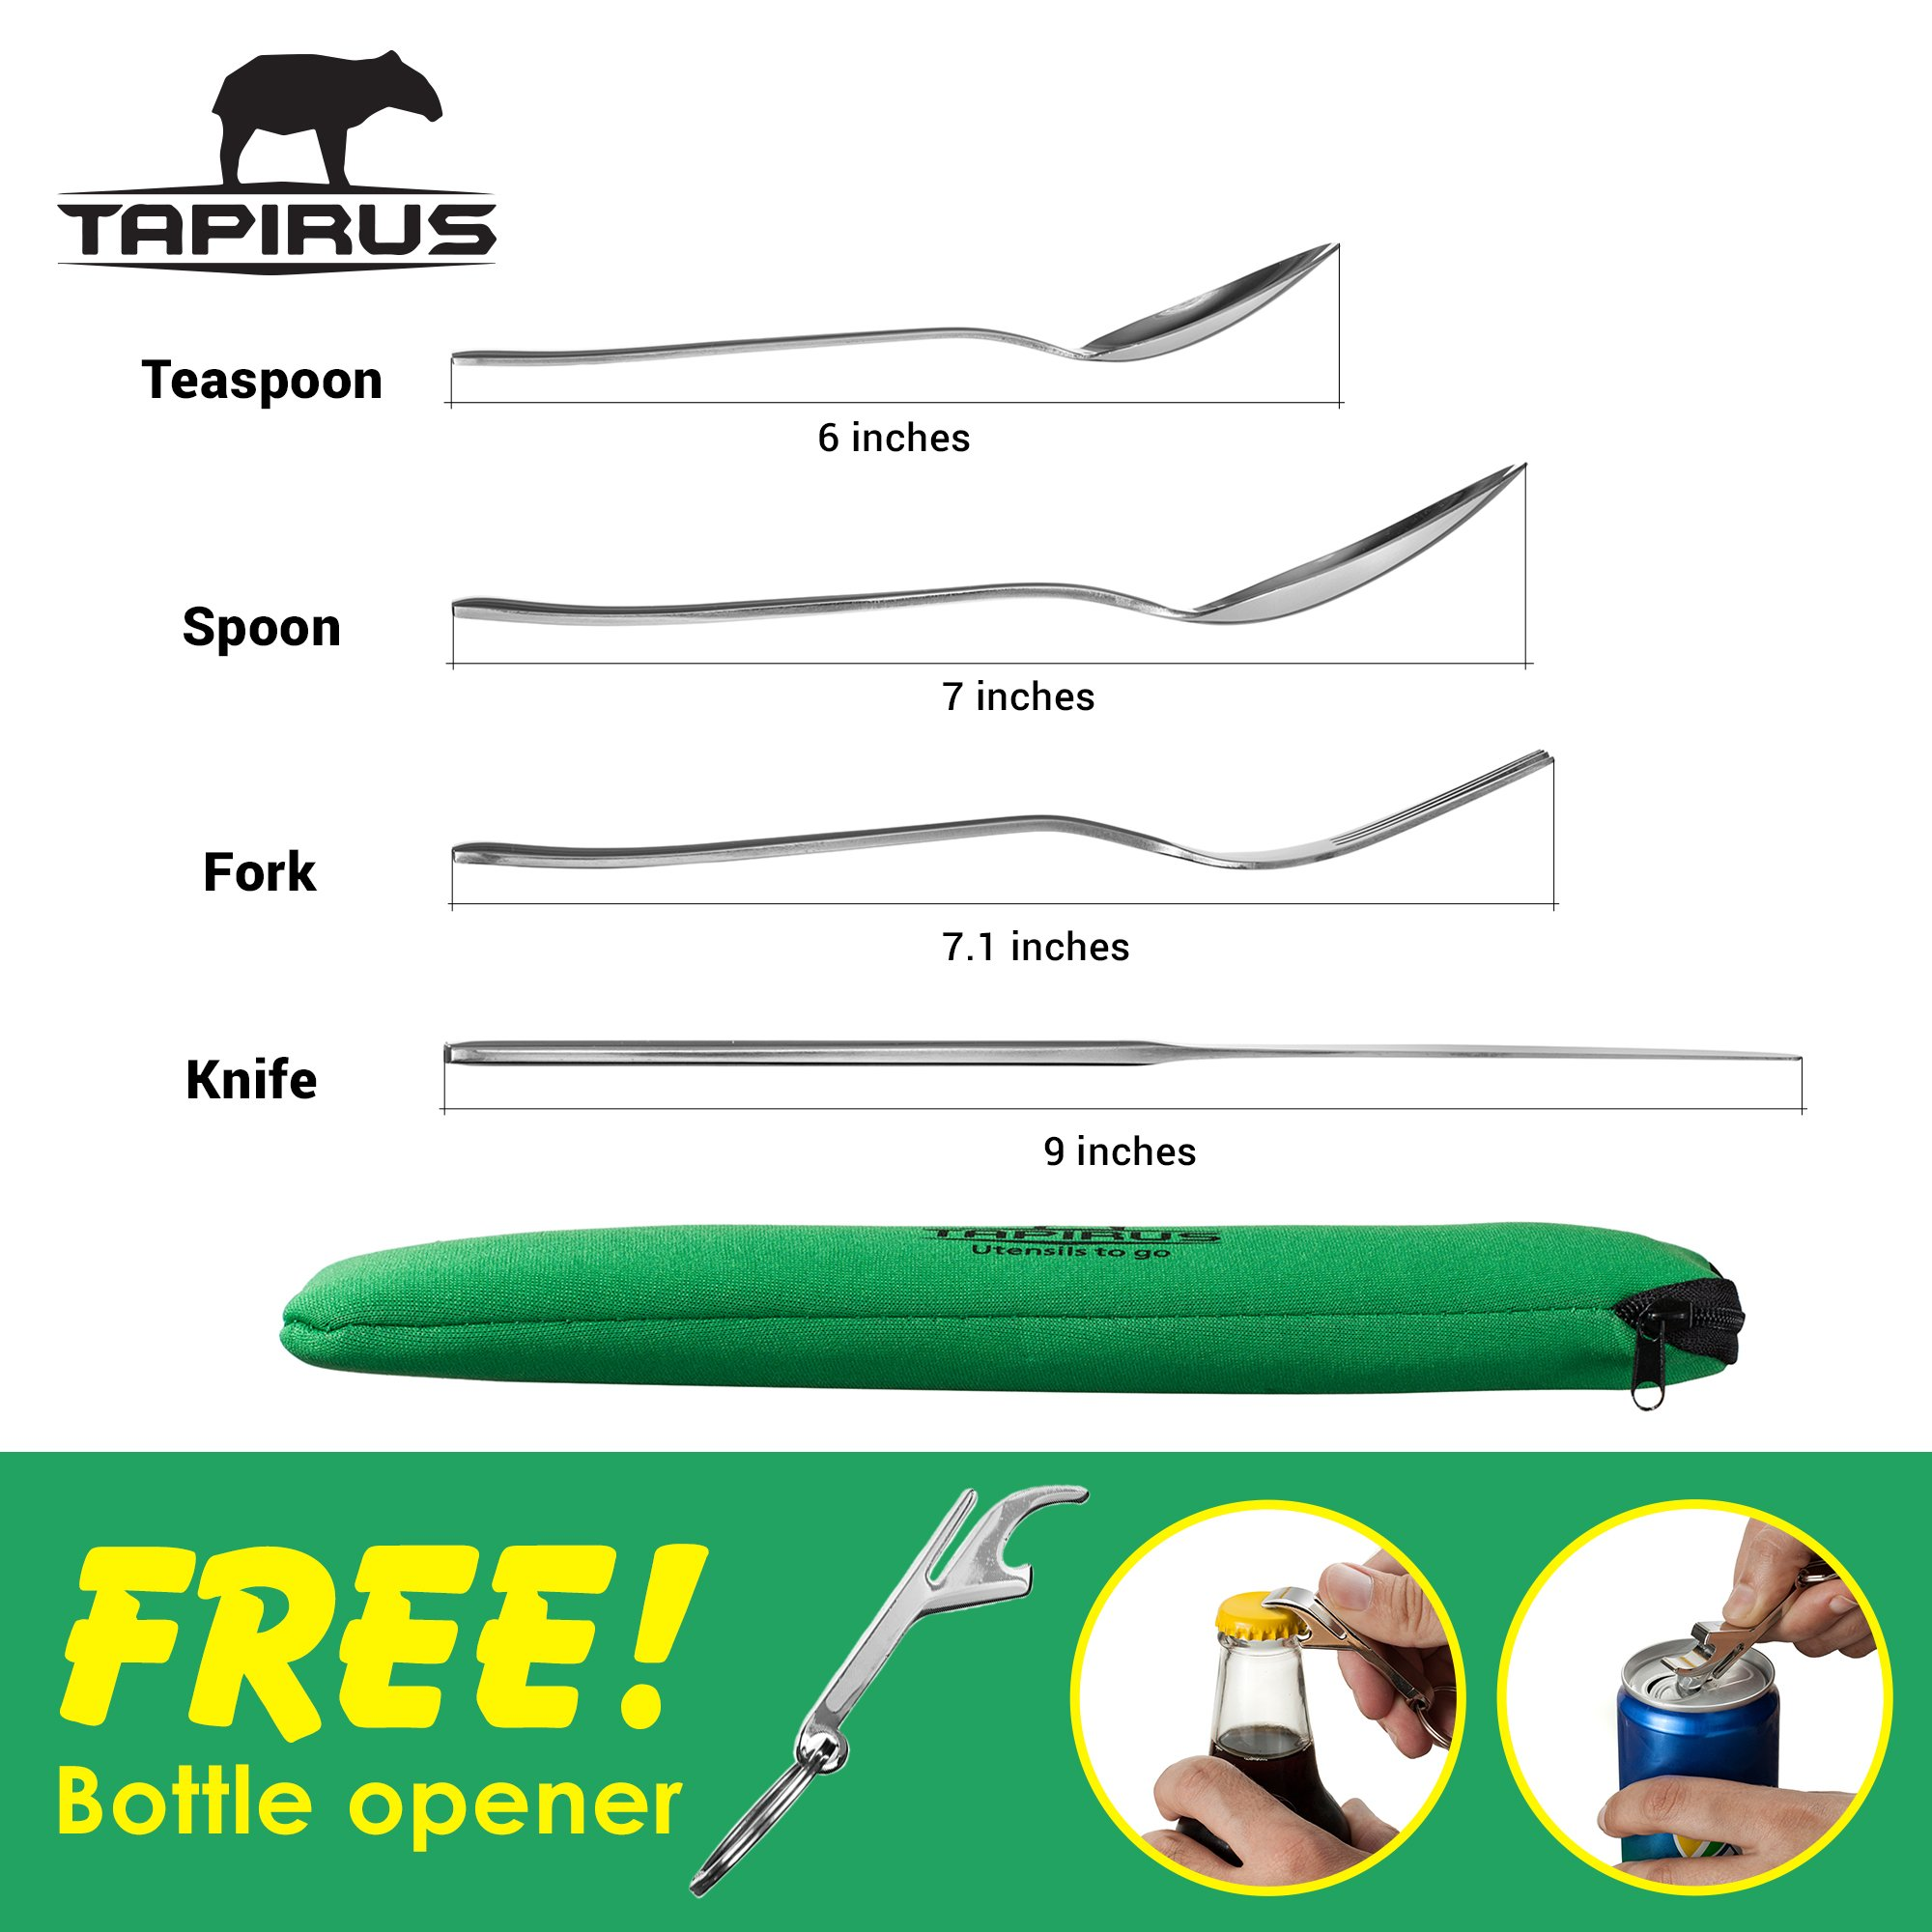 Tapirus Camping Eating Utensils To Go   Durable Stainless Steel Lightweight Construction Flatware   Travel Mess Cutlery Kit With Spoon, Teaspoon, Knife, Fork & Bottle Opener   Comes In A Carrying Case by Tapirus (Image #3)